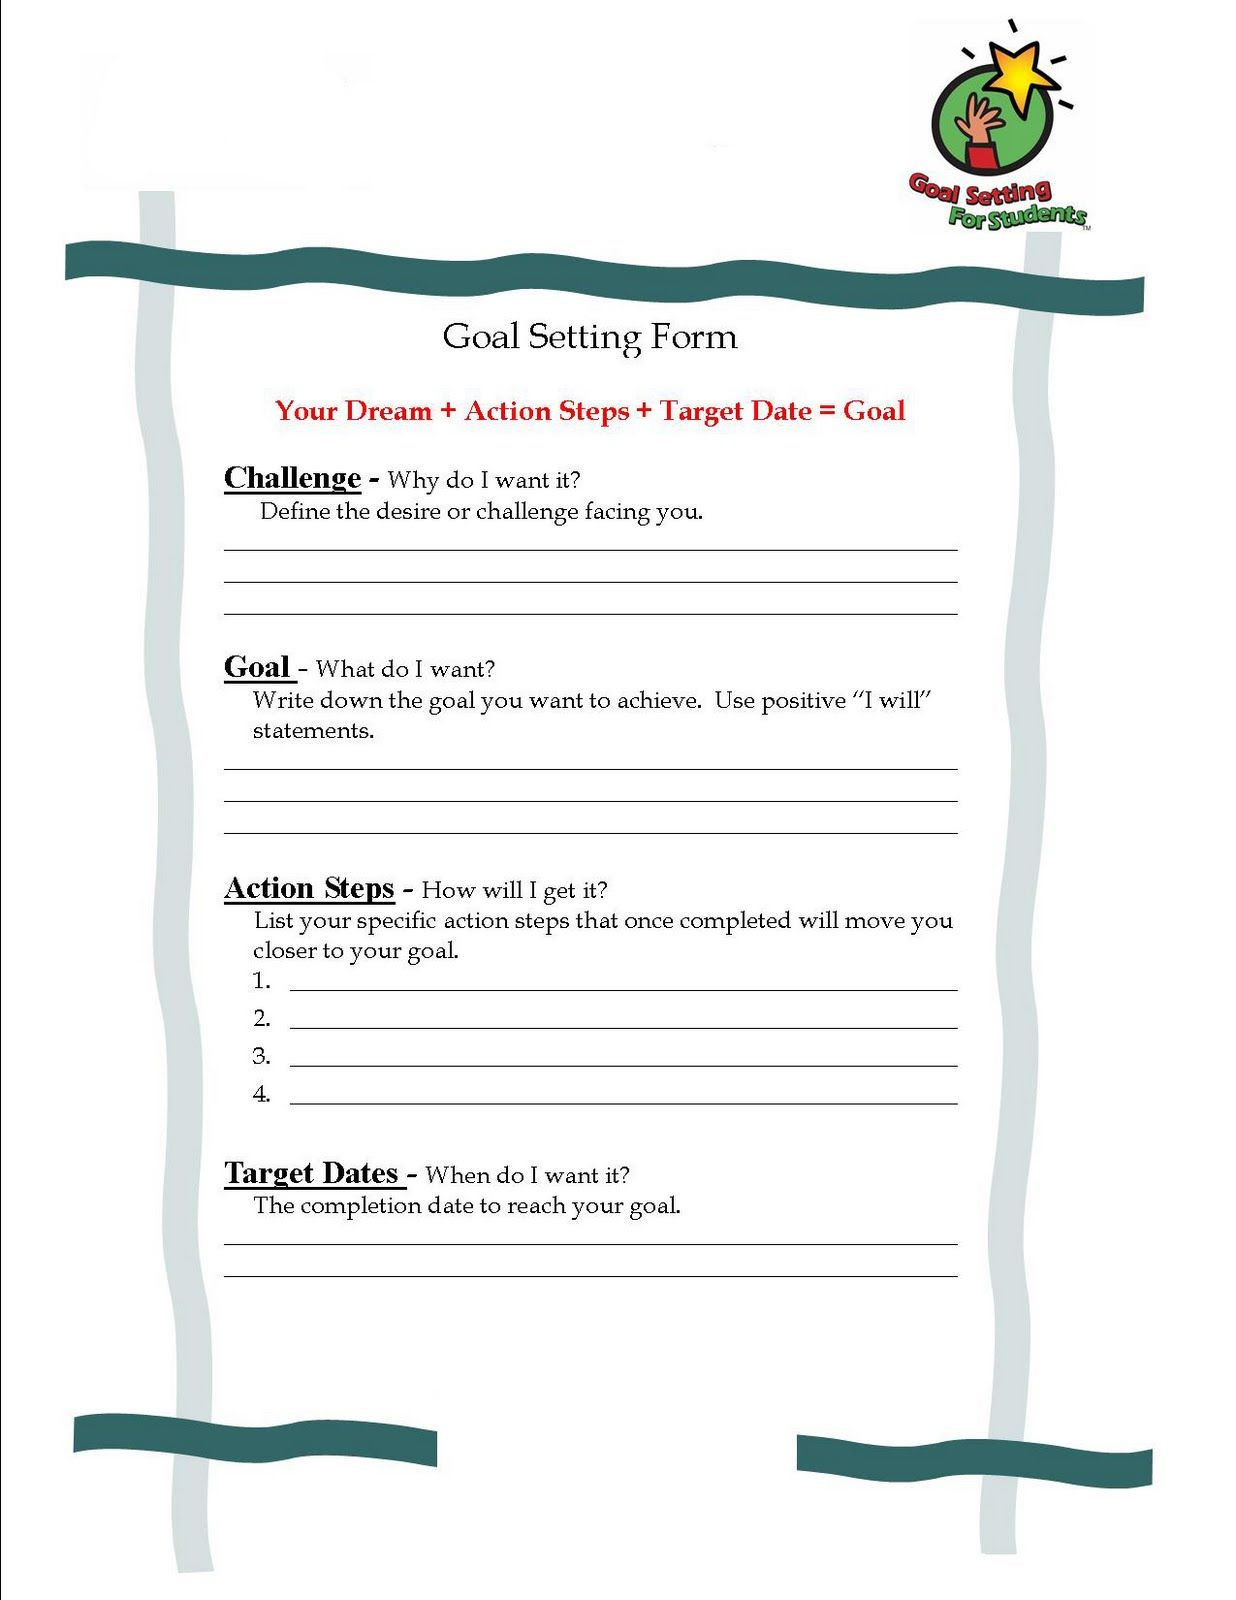 Student Goal Setting With Images